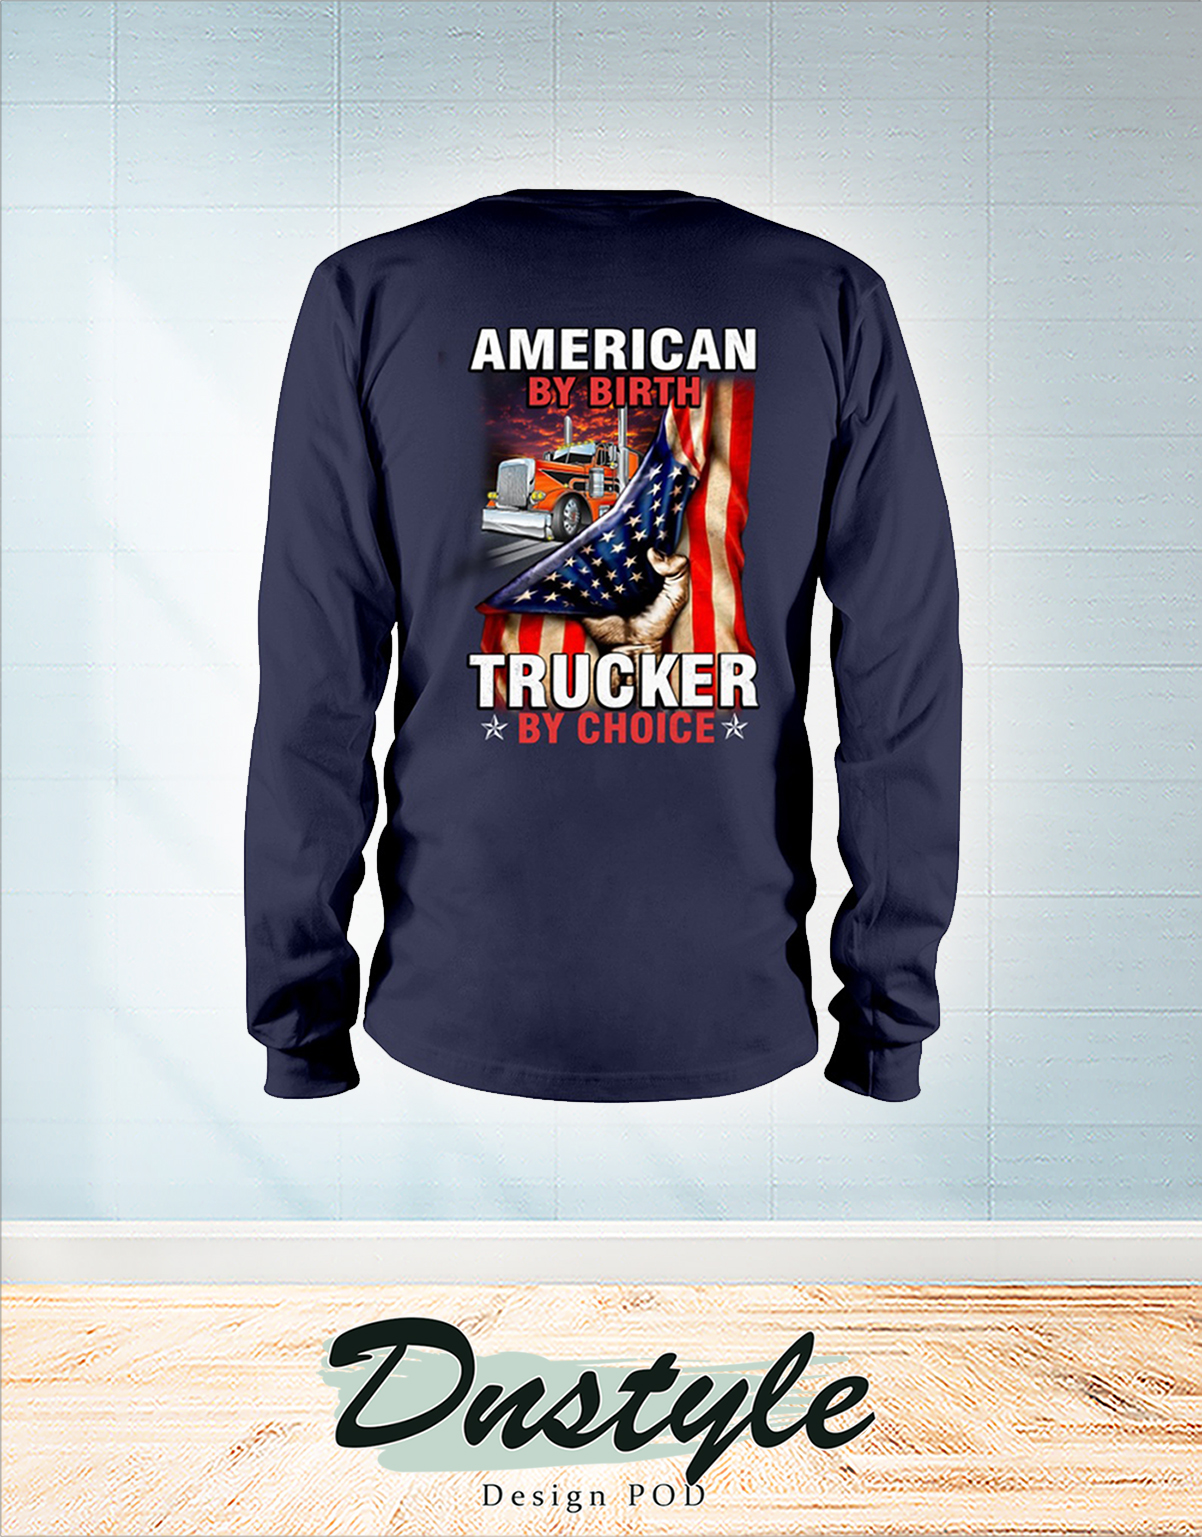 American by birth trucker by choice 4th july long sleeve